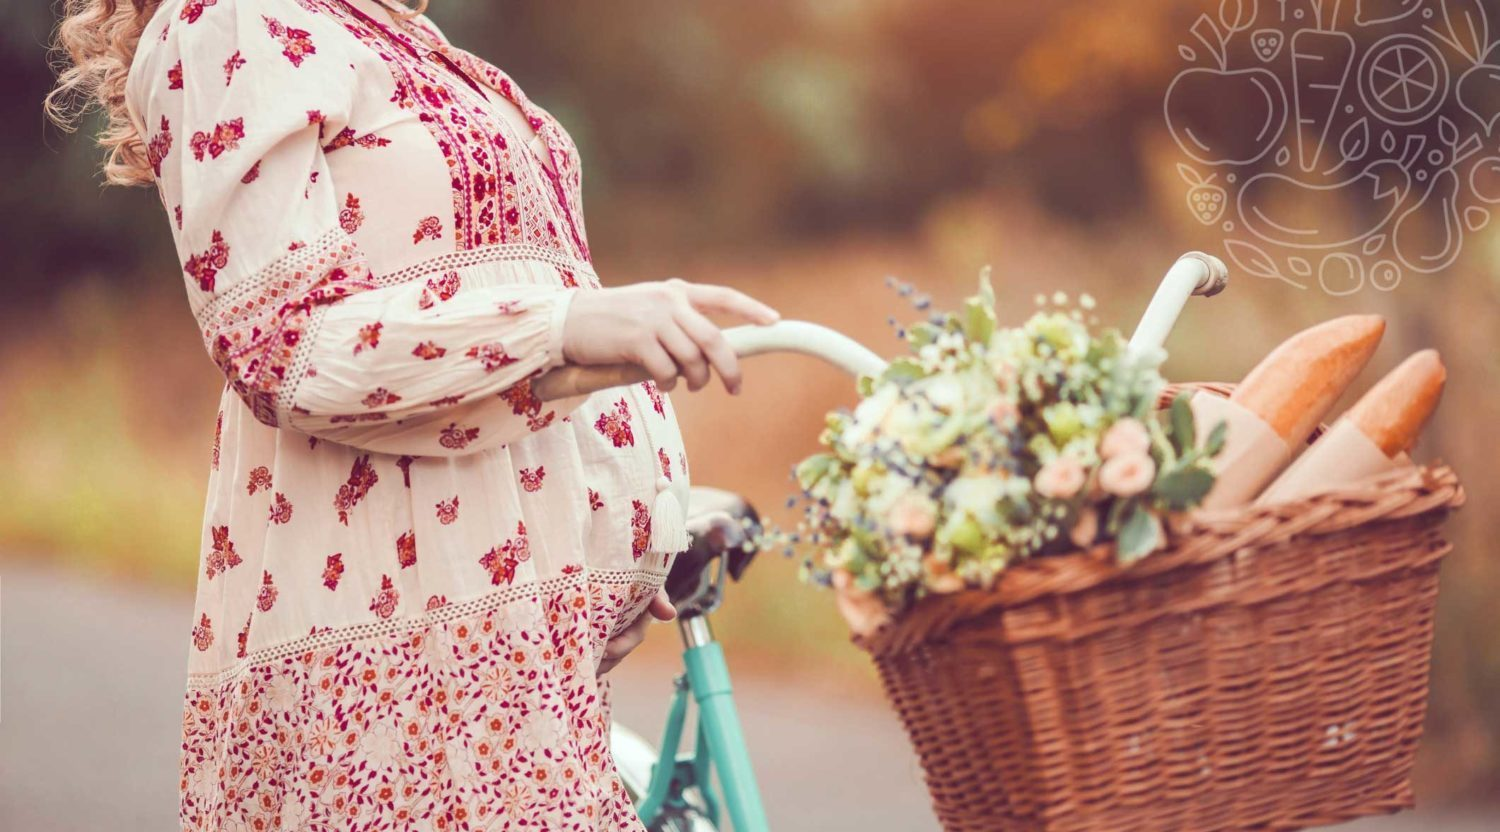 7 evidence-based pregnancy tips for a healthy baby